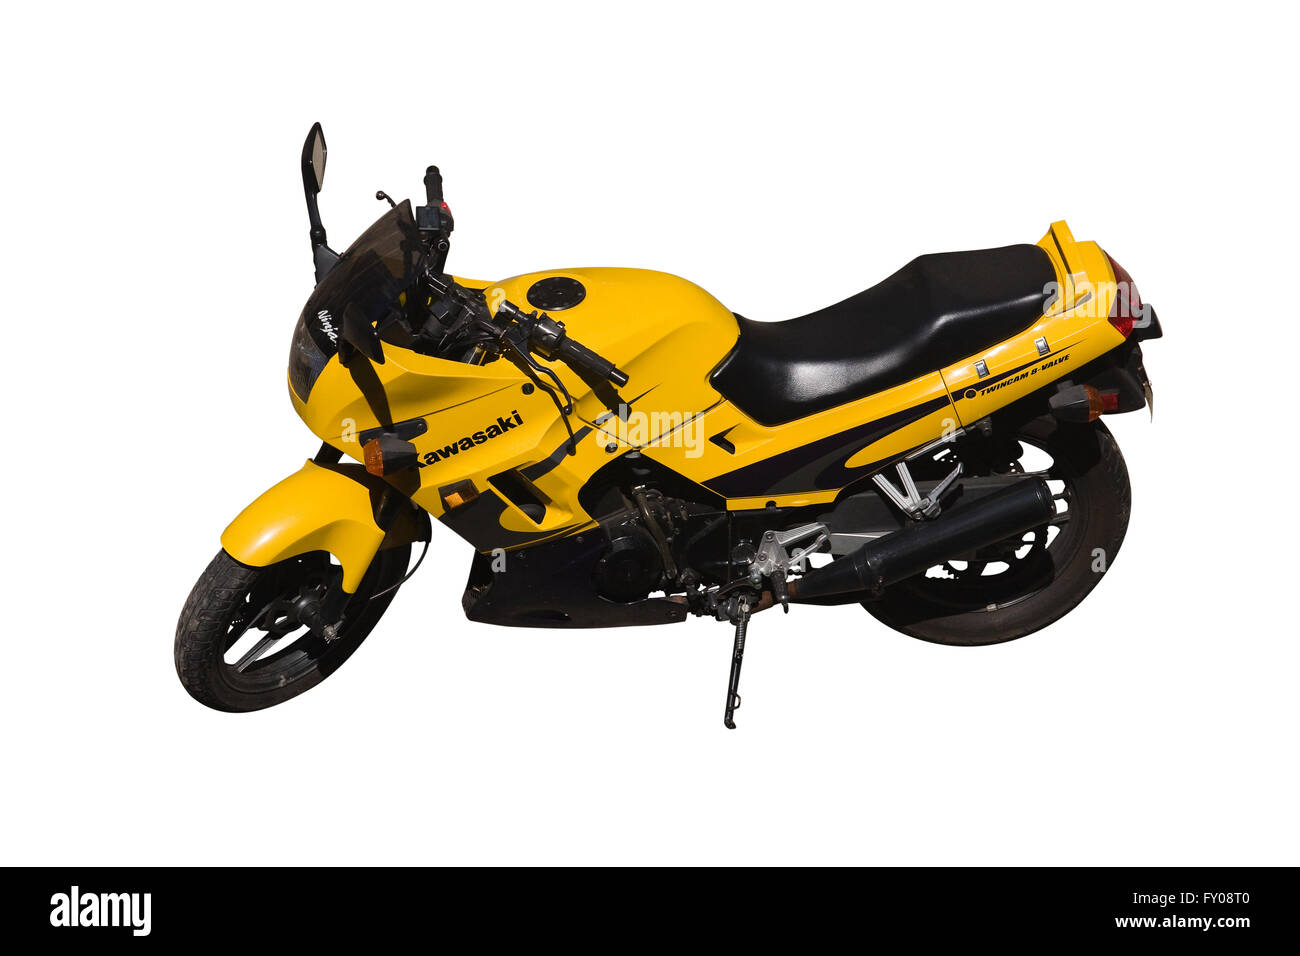 Cut Out. Yellow Kawasaki Ninja ZZ-R-250 Twin Cam 8 Valve motorcycle parked without rider isolated on white background. - Stock Image